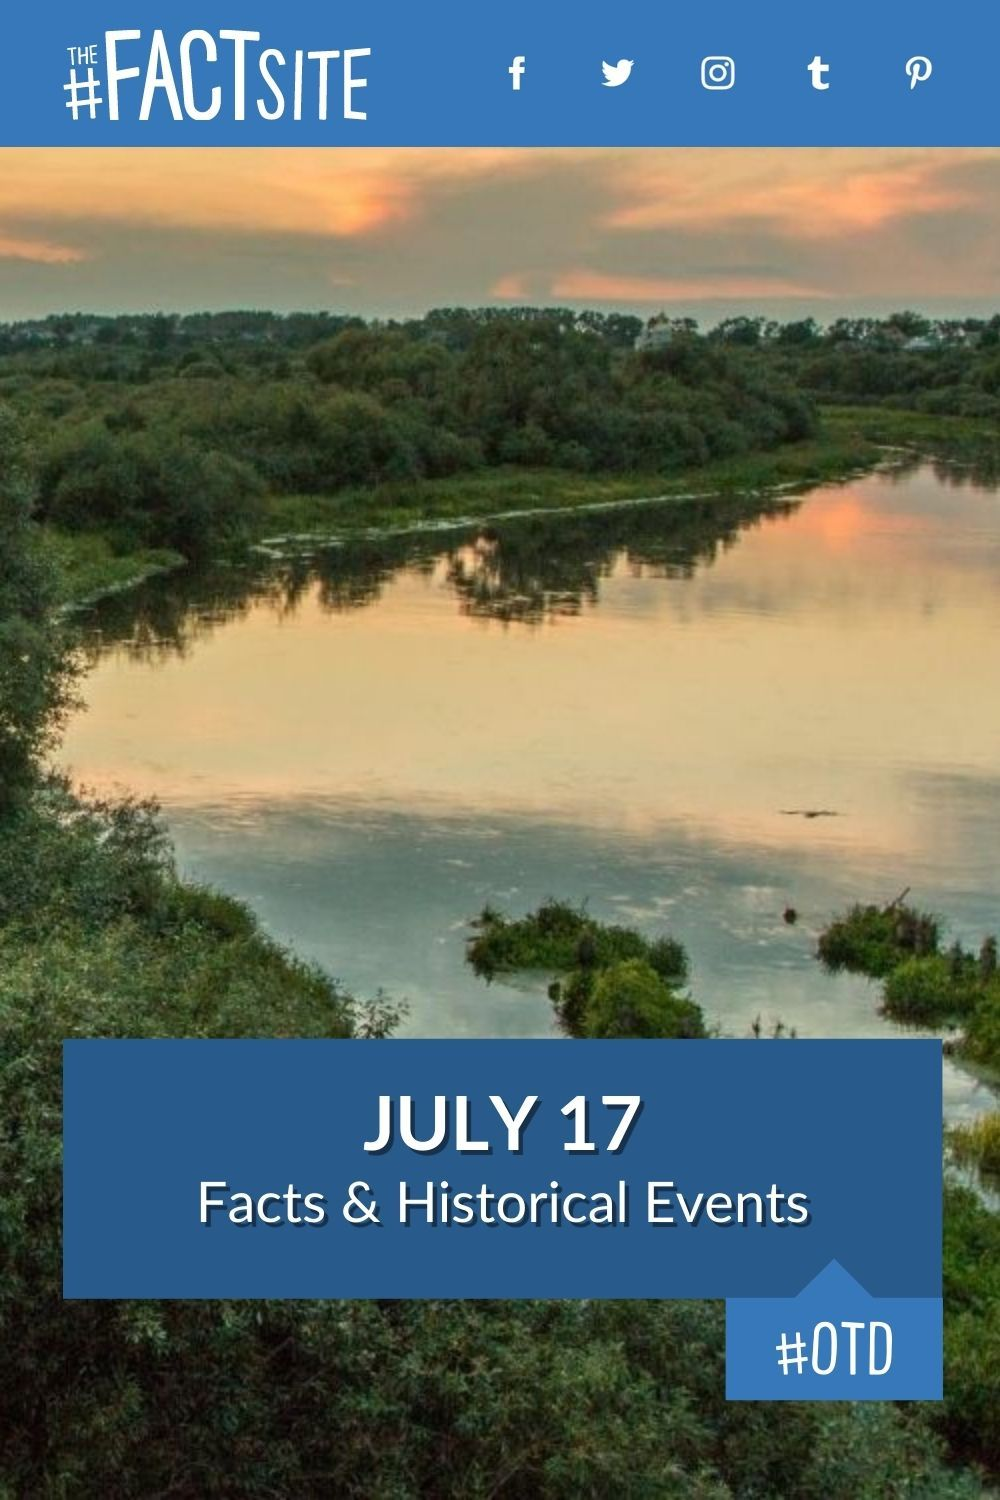 Facts & Historic Events That Happened on July 17